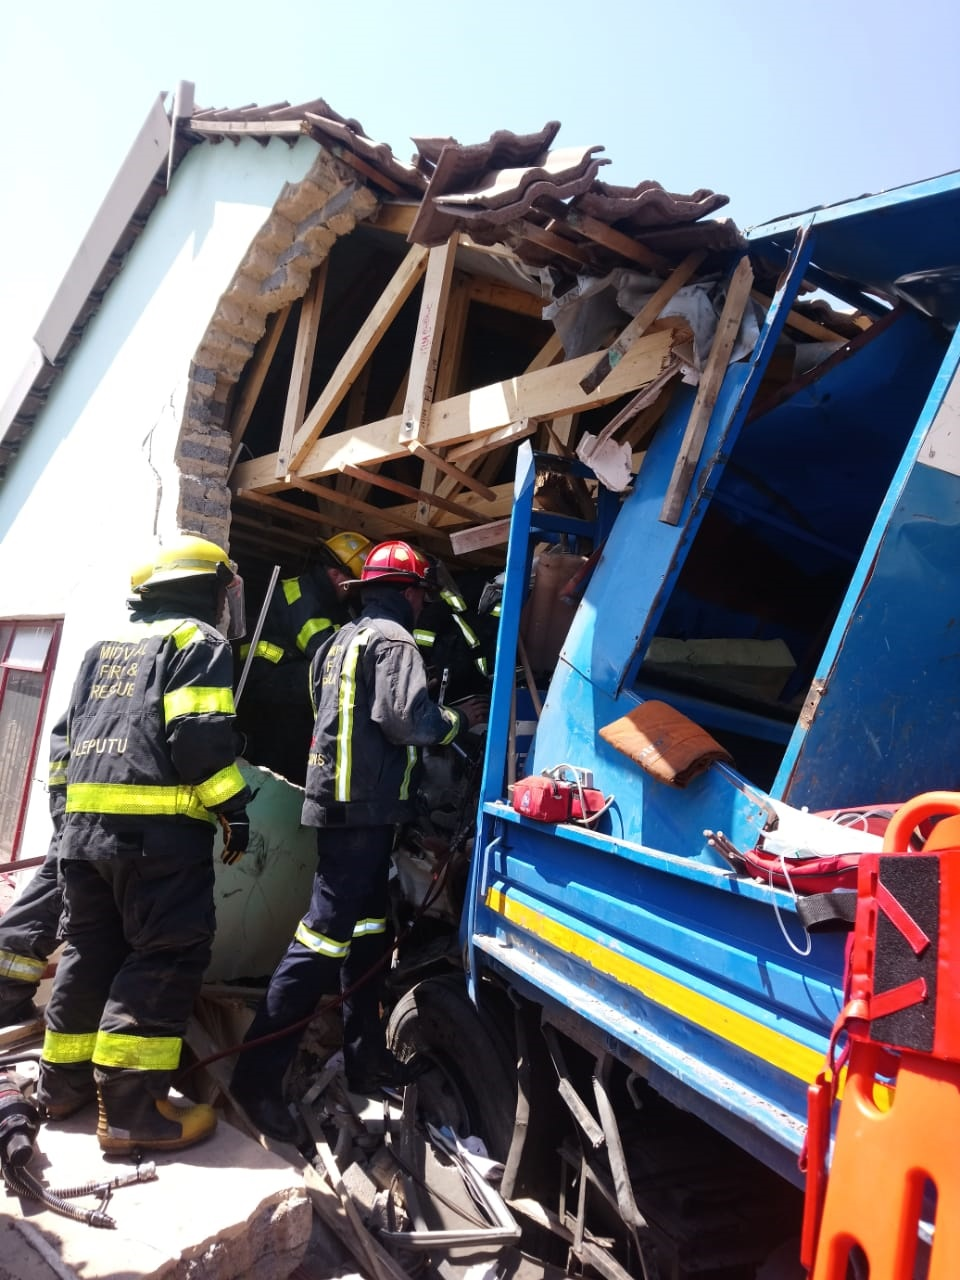 News24.com | Three injured as truck crashes into house in Meyerton